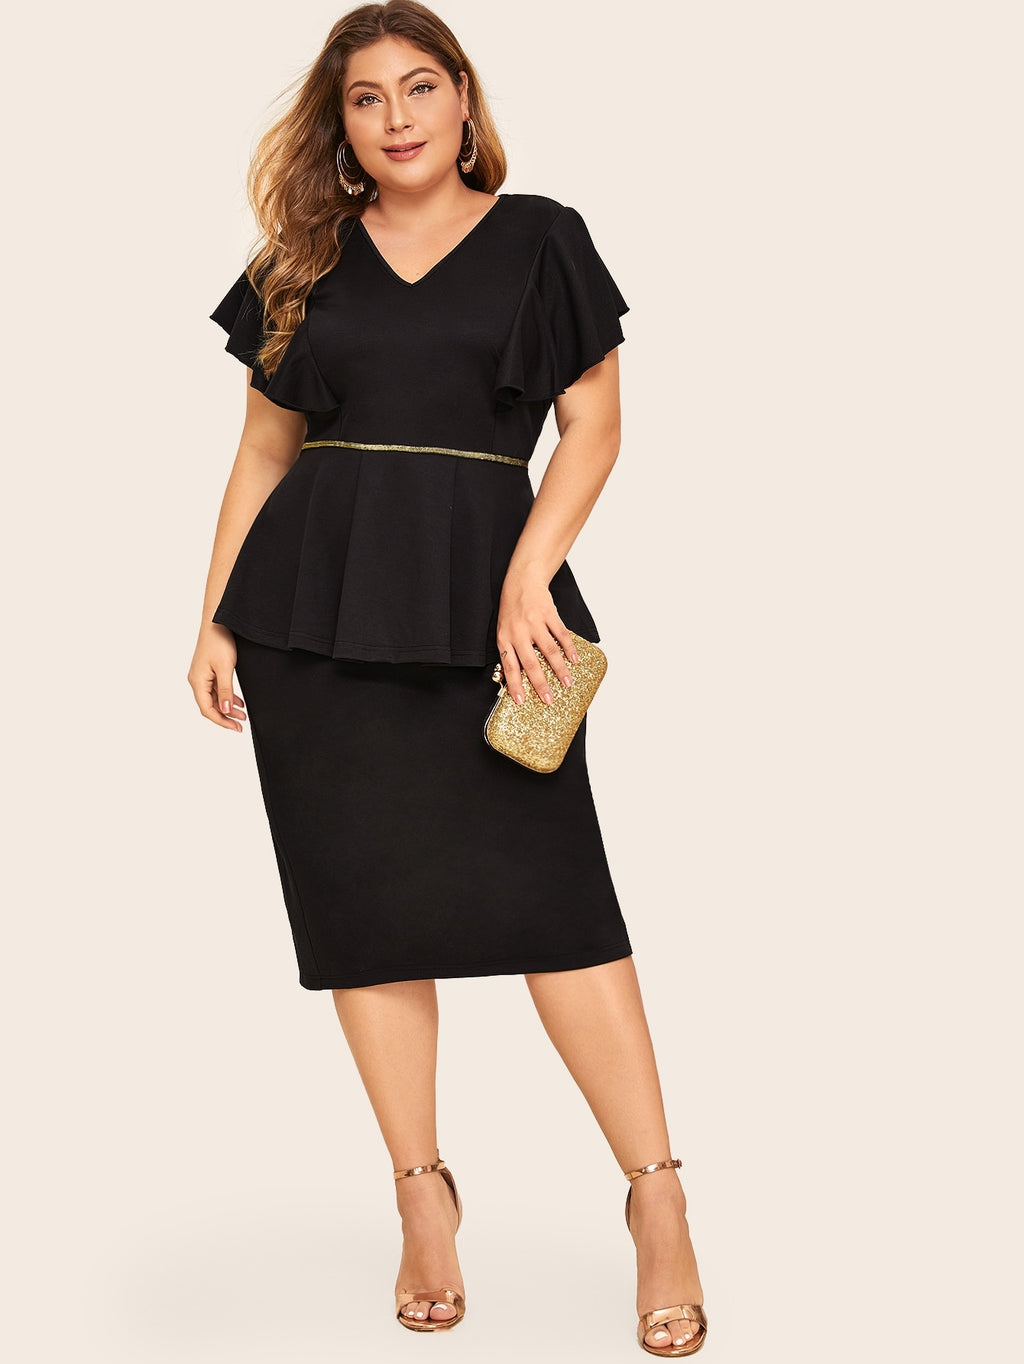 Plus Size Ruffle Cuff Slit Back Sheath Dress